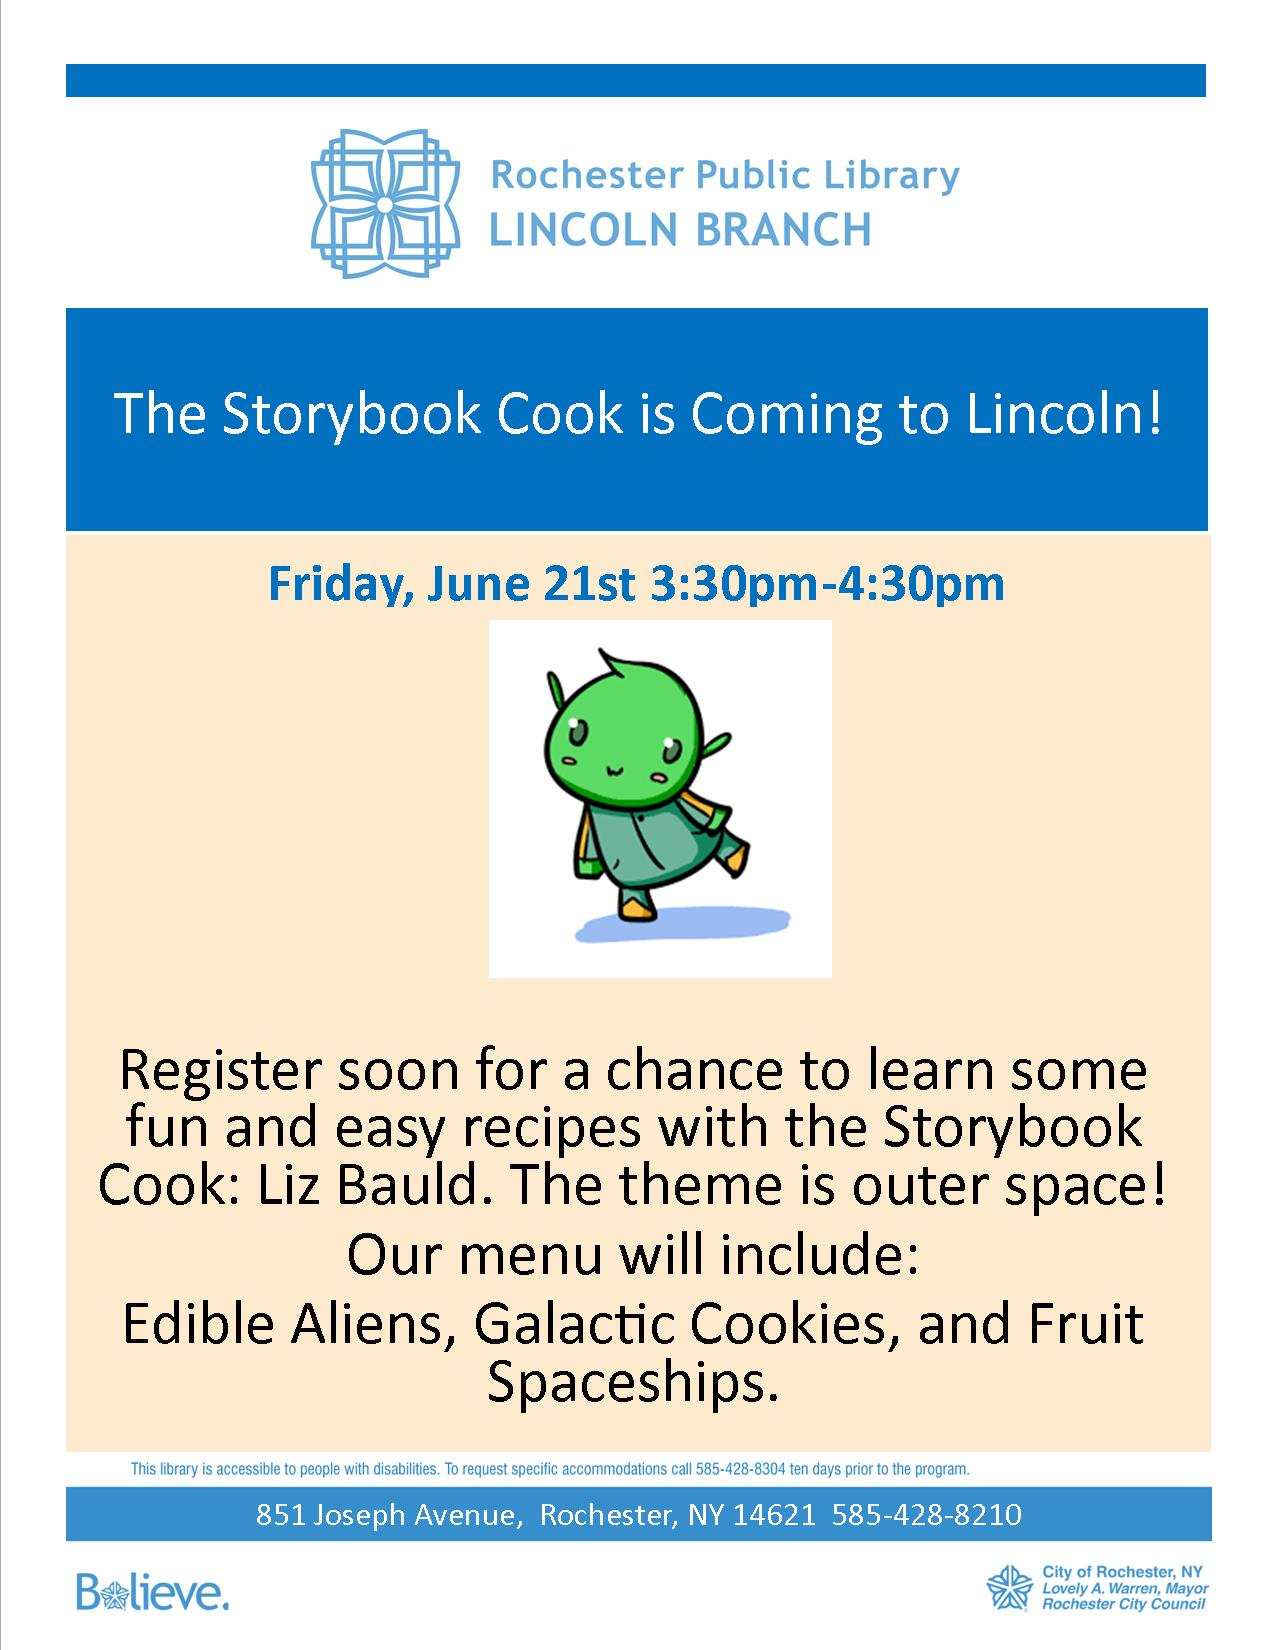 Cooking with the Storybook Cook